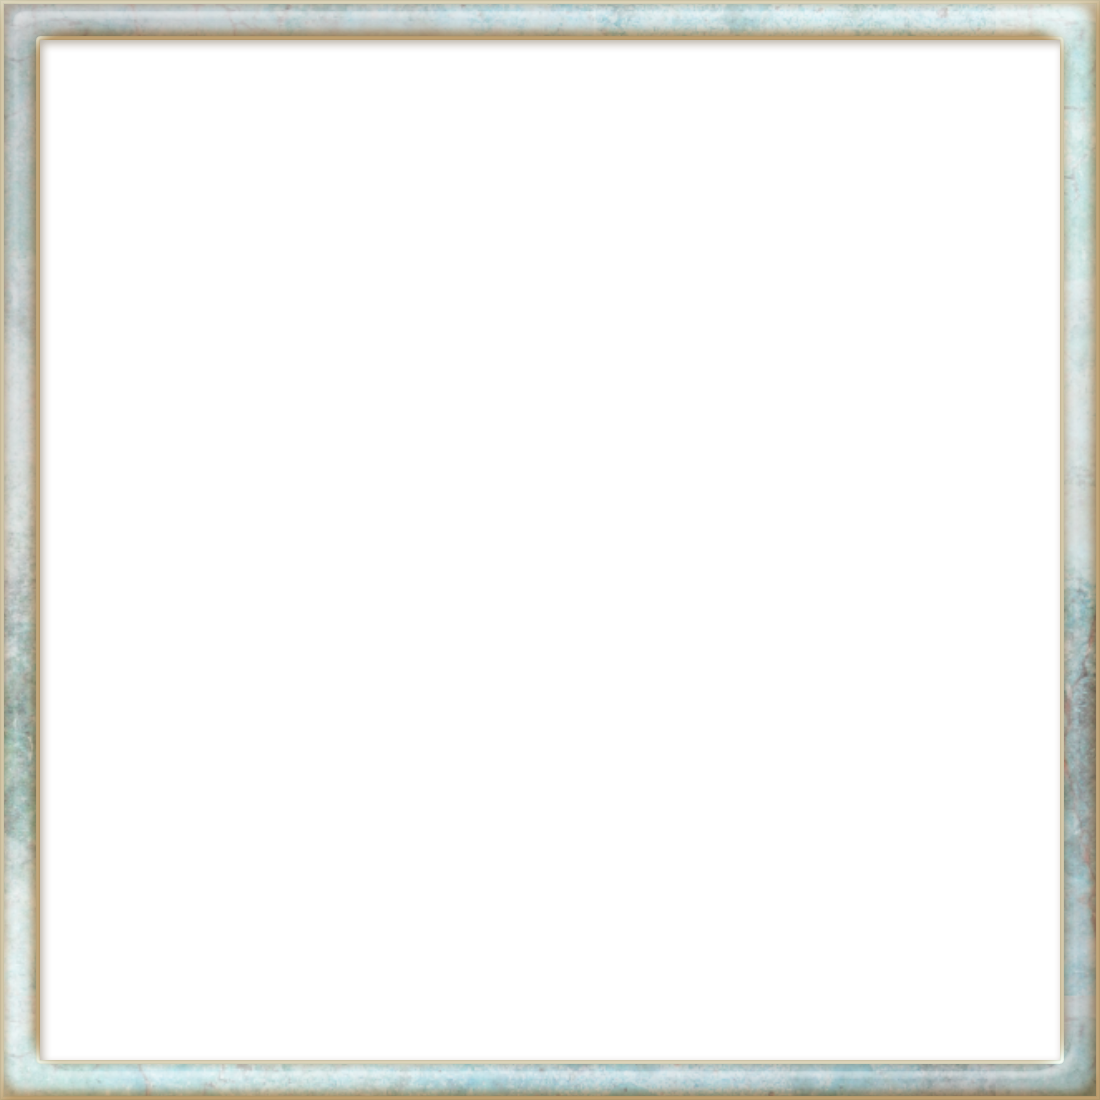 Get Square Frame Png Pictures #25173 - Free Icons and PNG Backgrounds